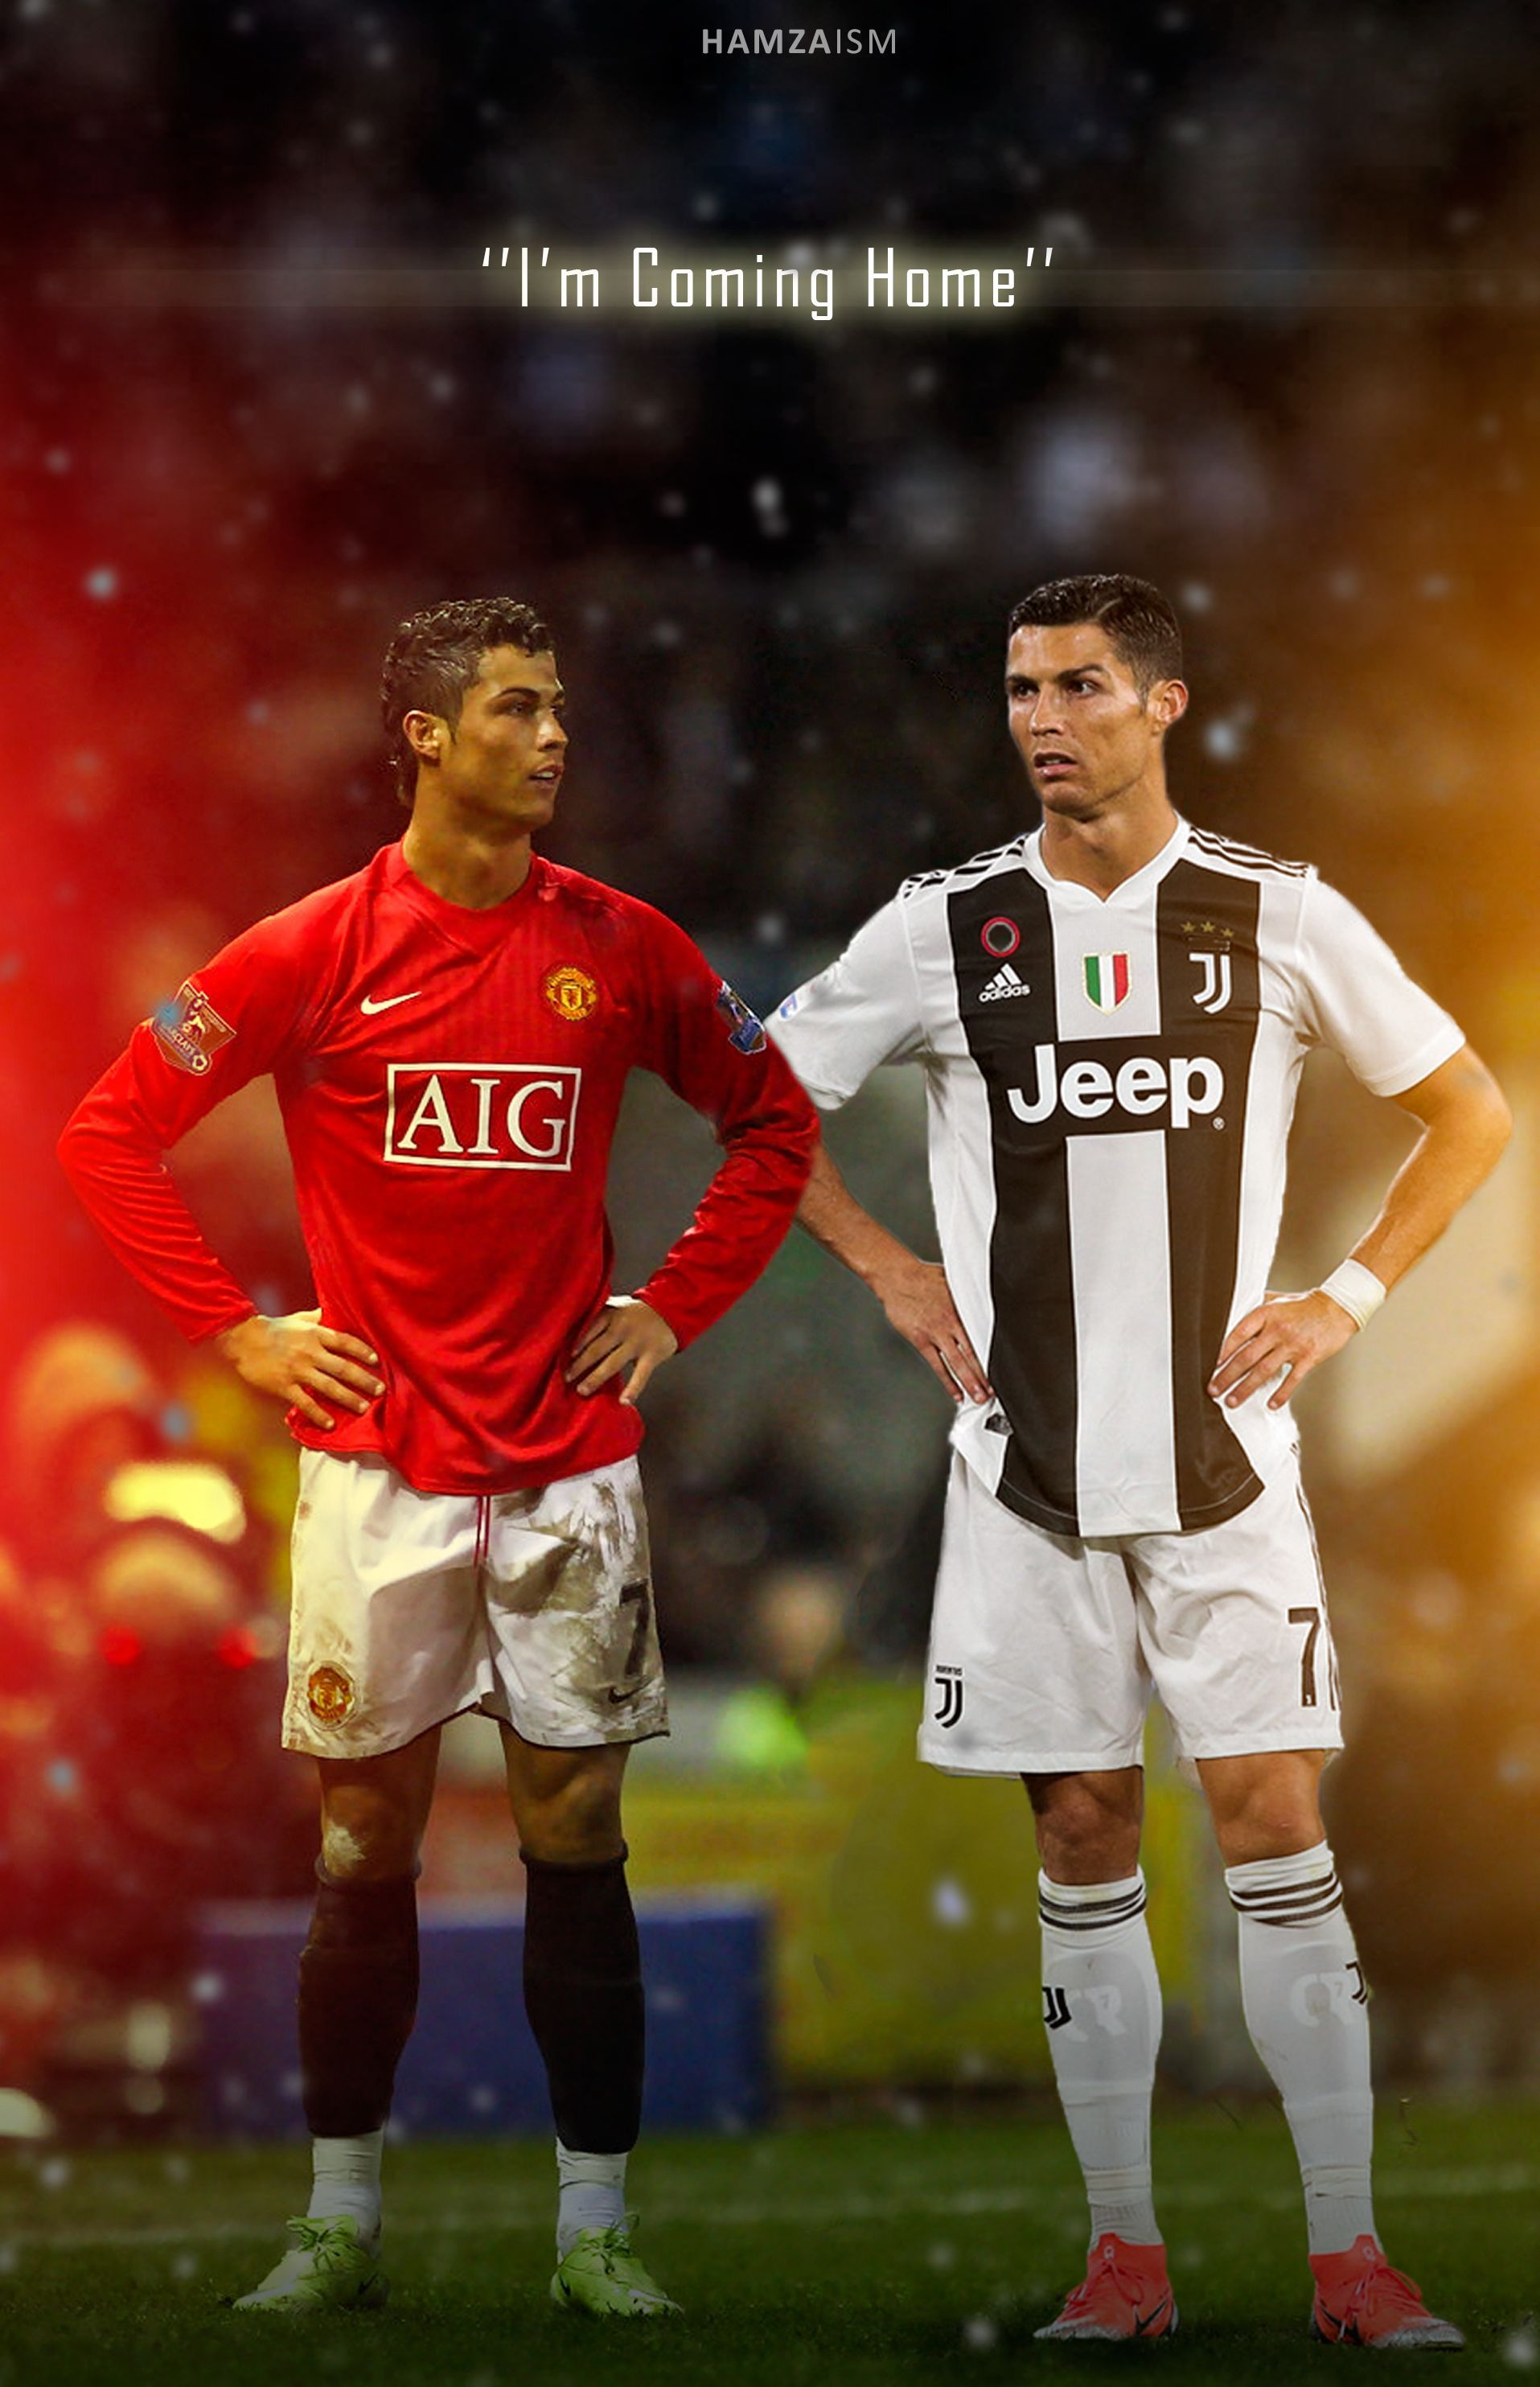 Cristiano Ronaldo Manchester United Wallpapers Top Free Cristiano Ronaldo Manchester United Backgrounds Wallpaperaccess